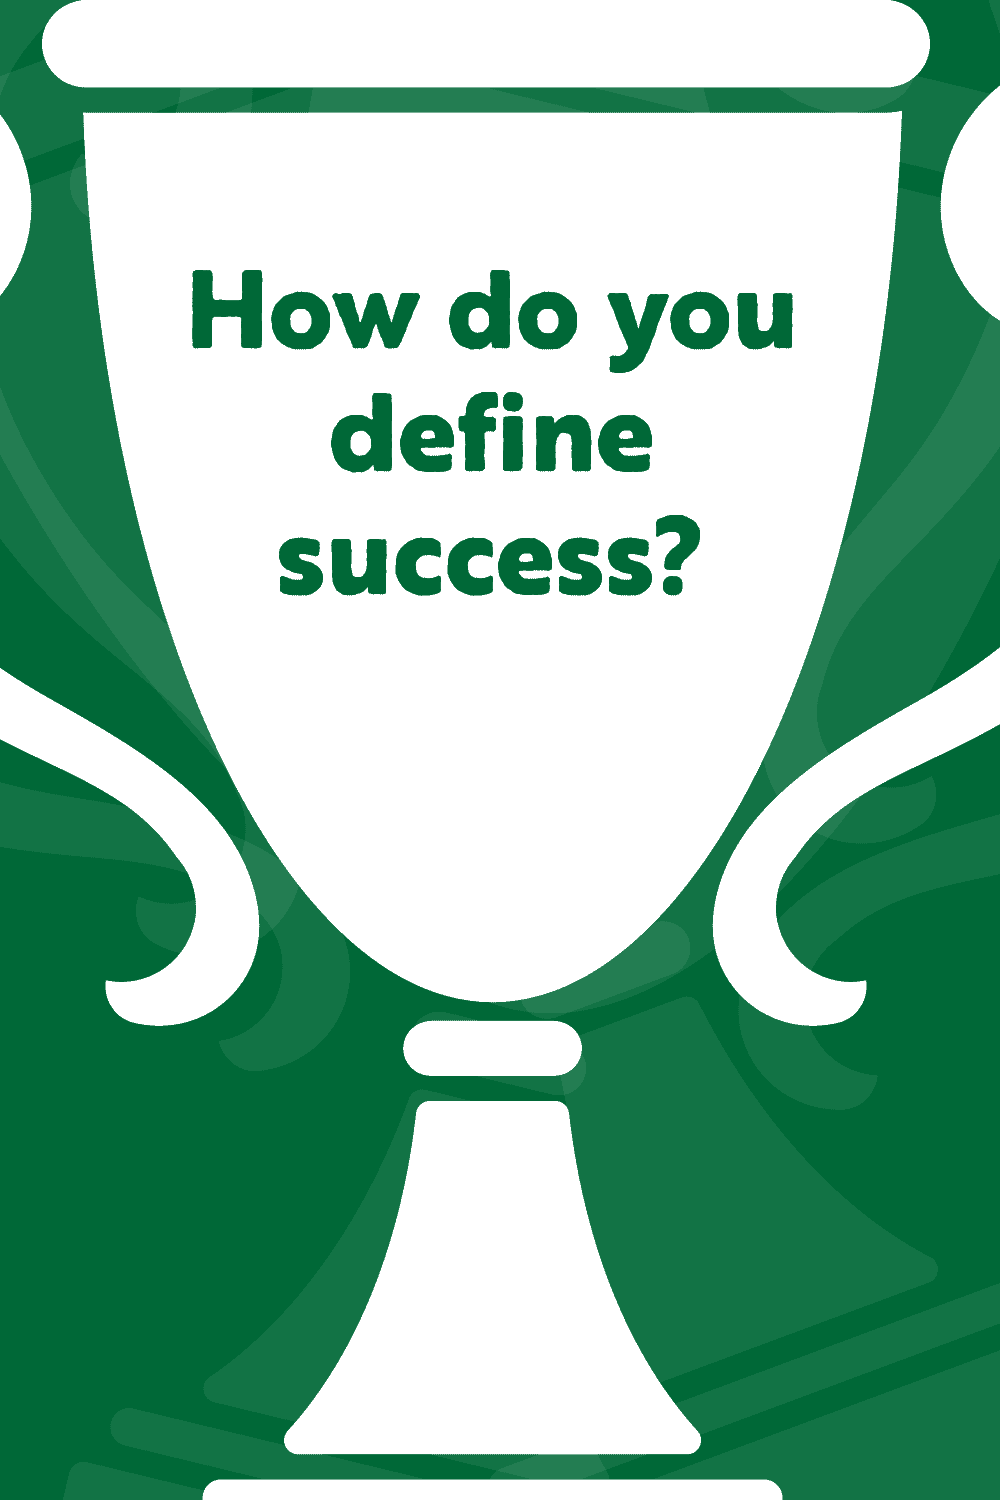 White trophy with green background on defining success at age 30